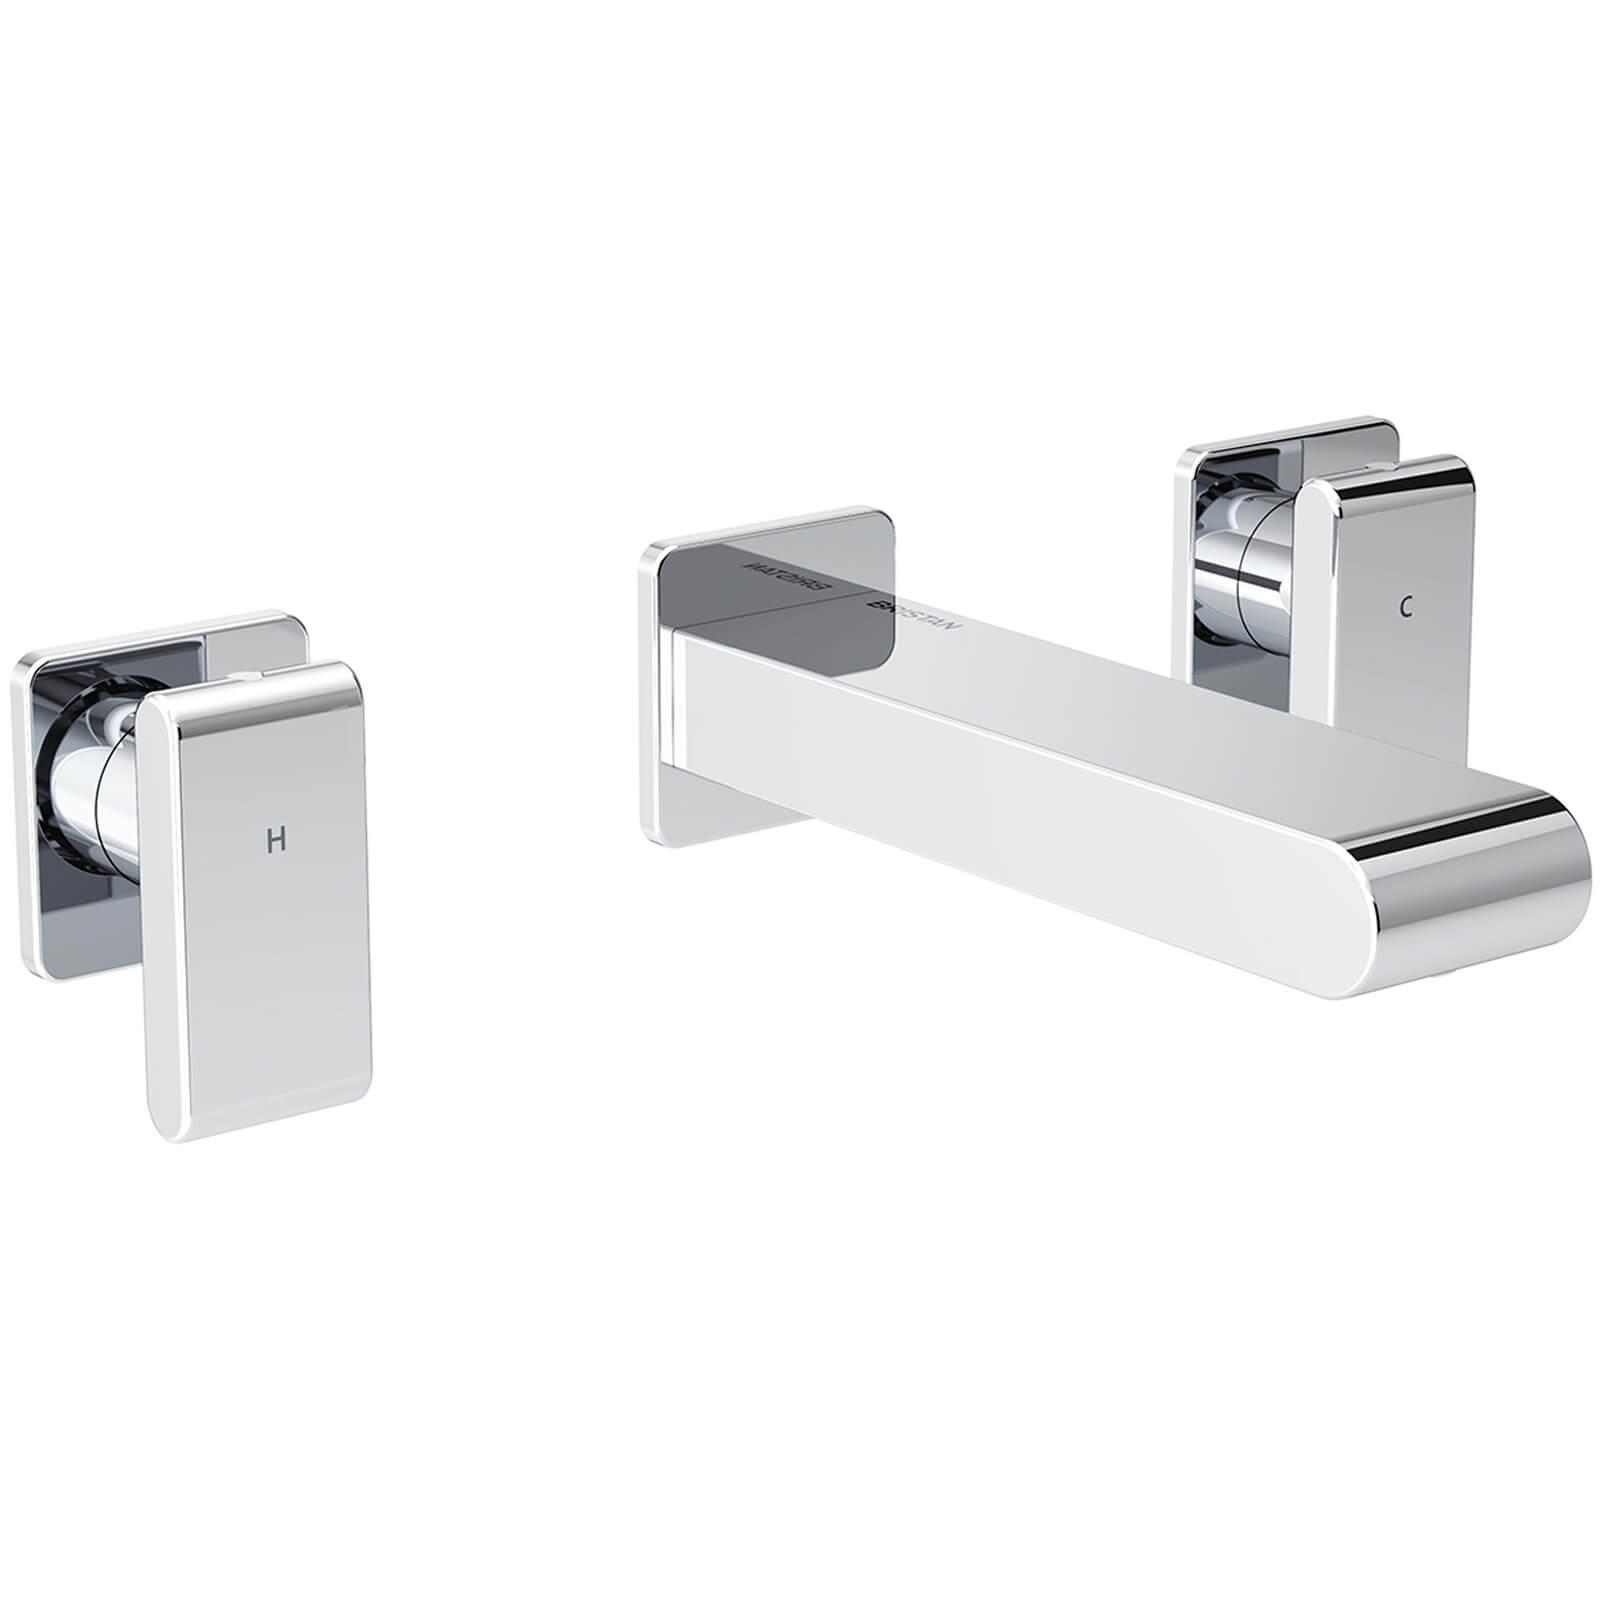 Bristan Pivot 3 Hole Wall Mounted Basin Mixer Tap